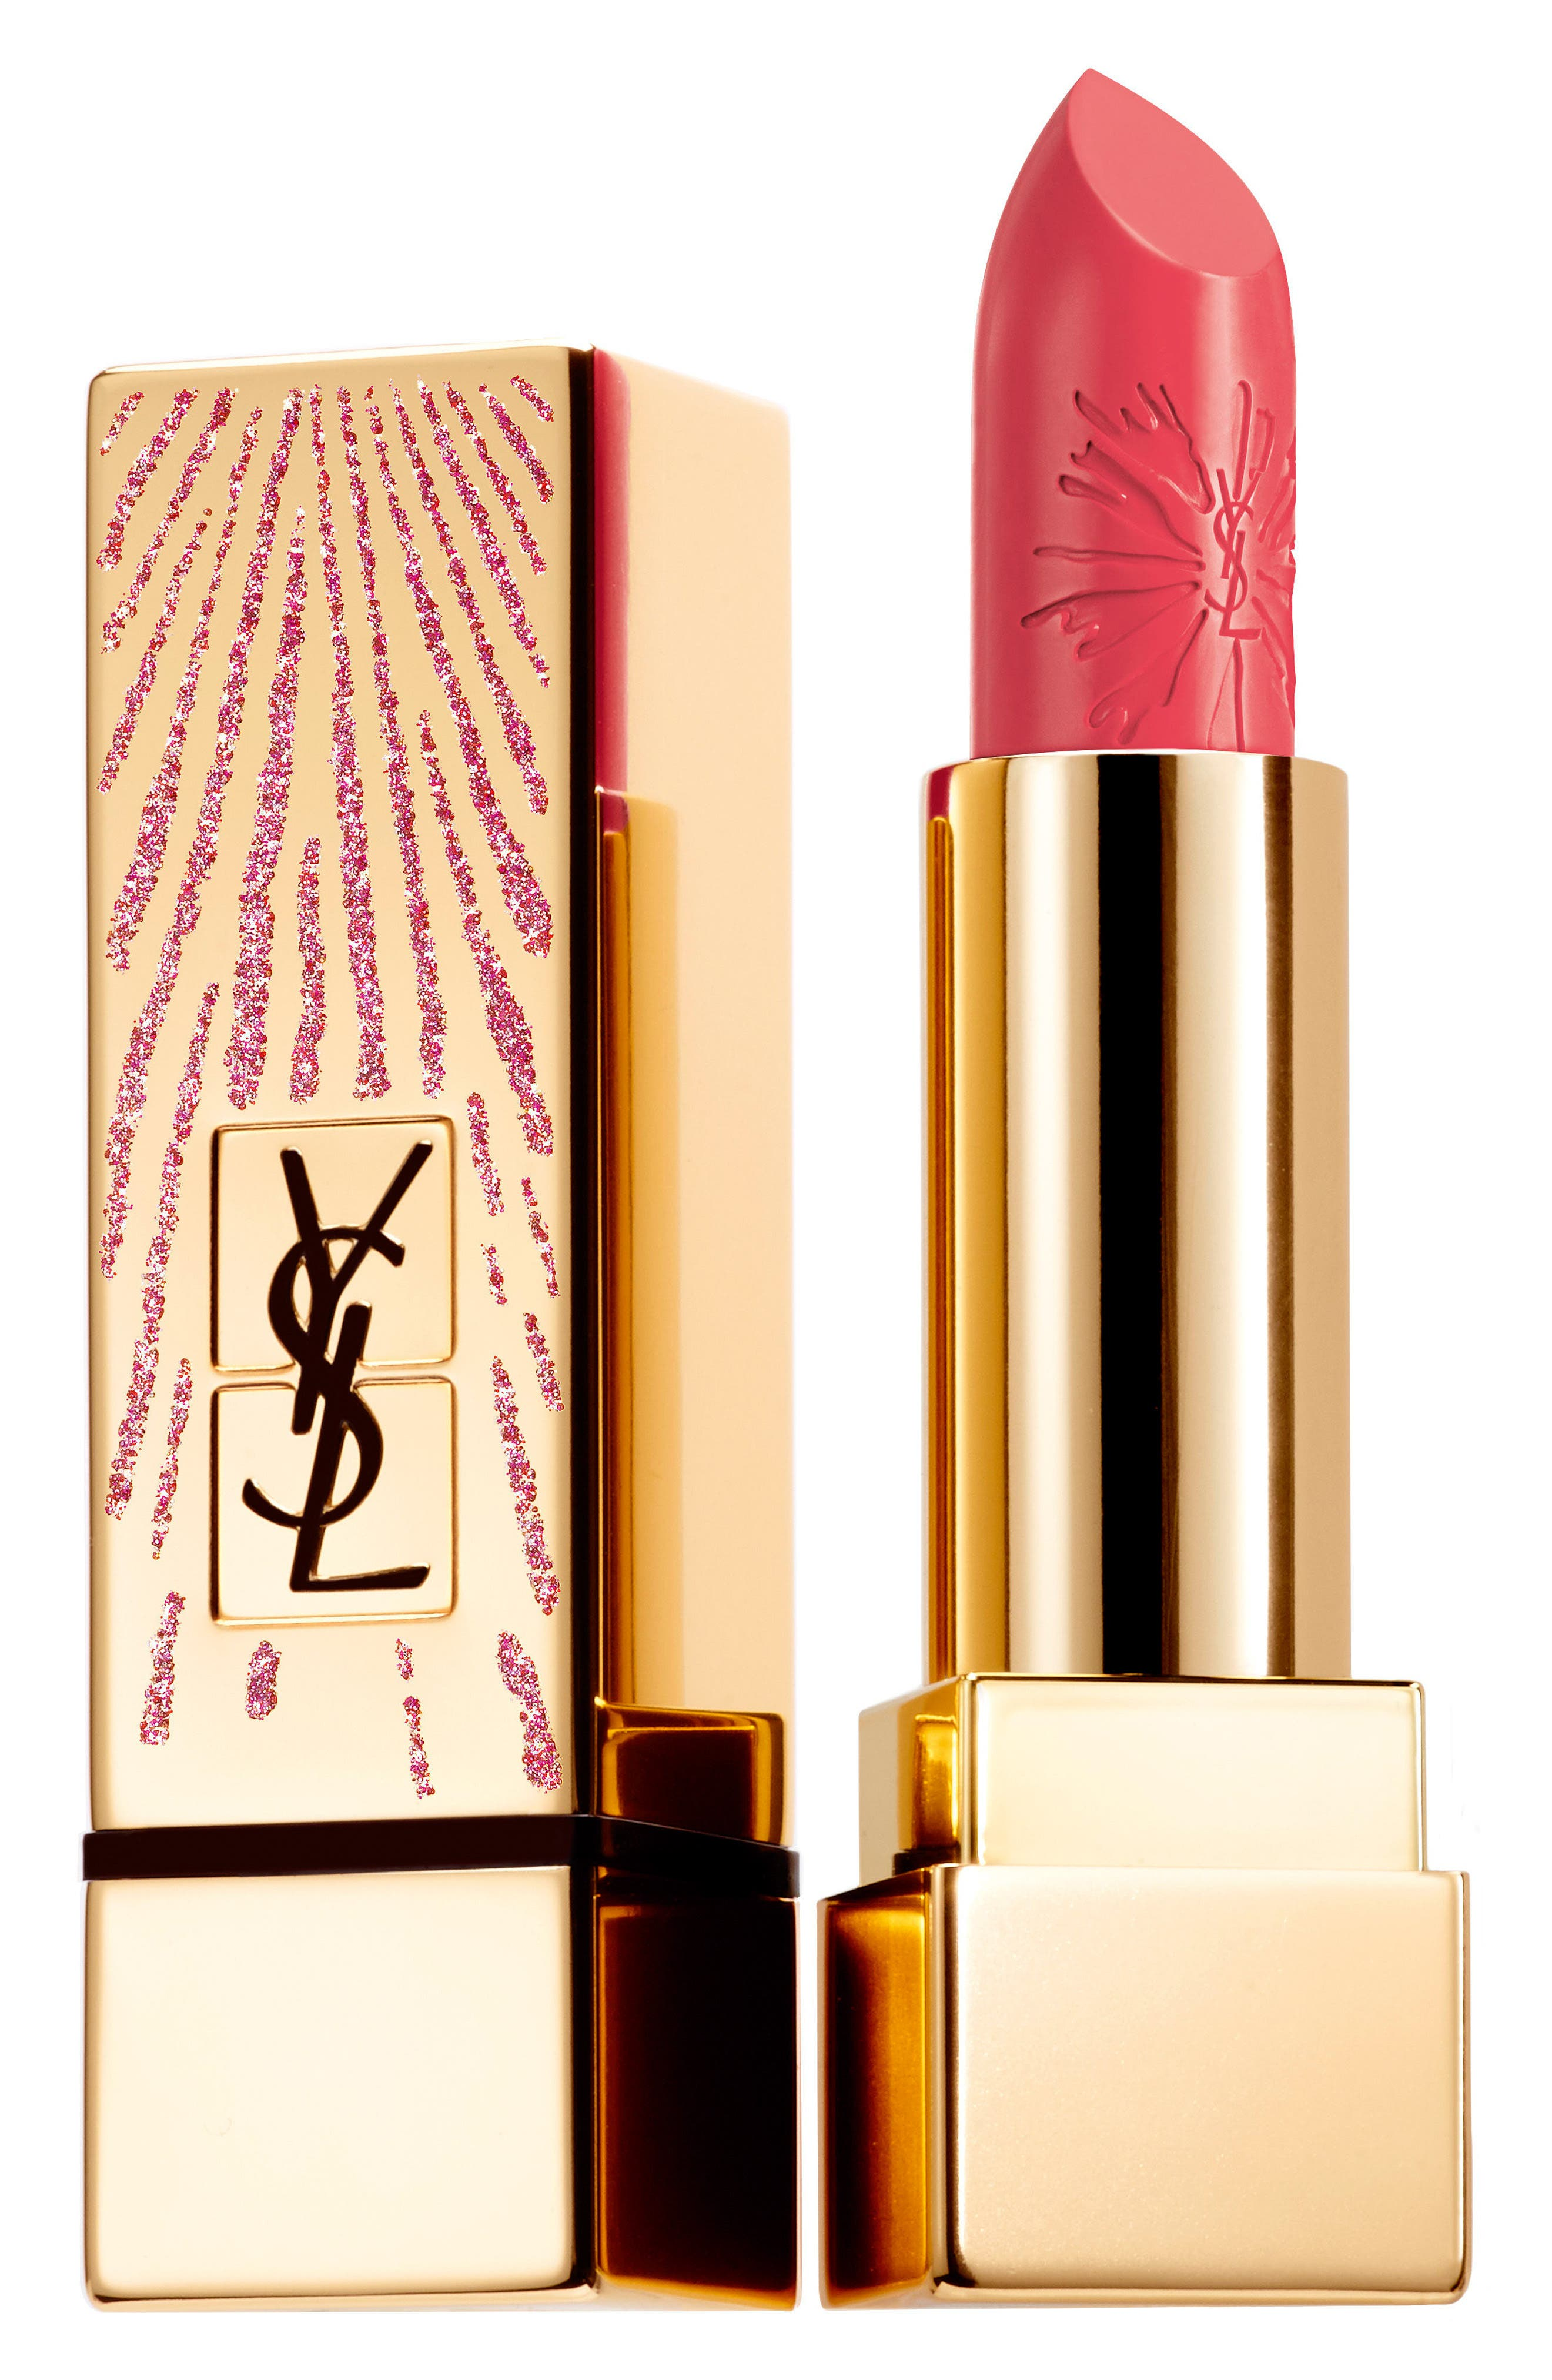 Yves Saint Laurent Rouge Pur Couture Dazzling Lights Lipstick (Limited Edition)